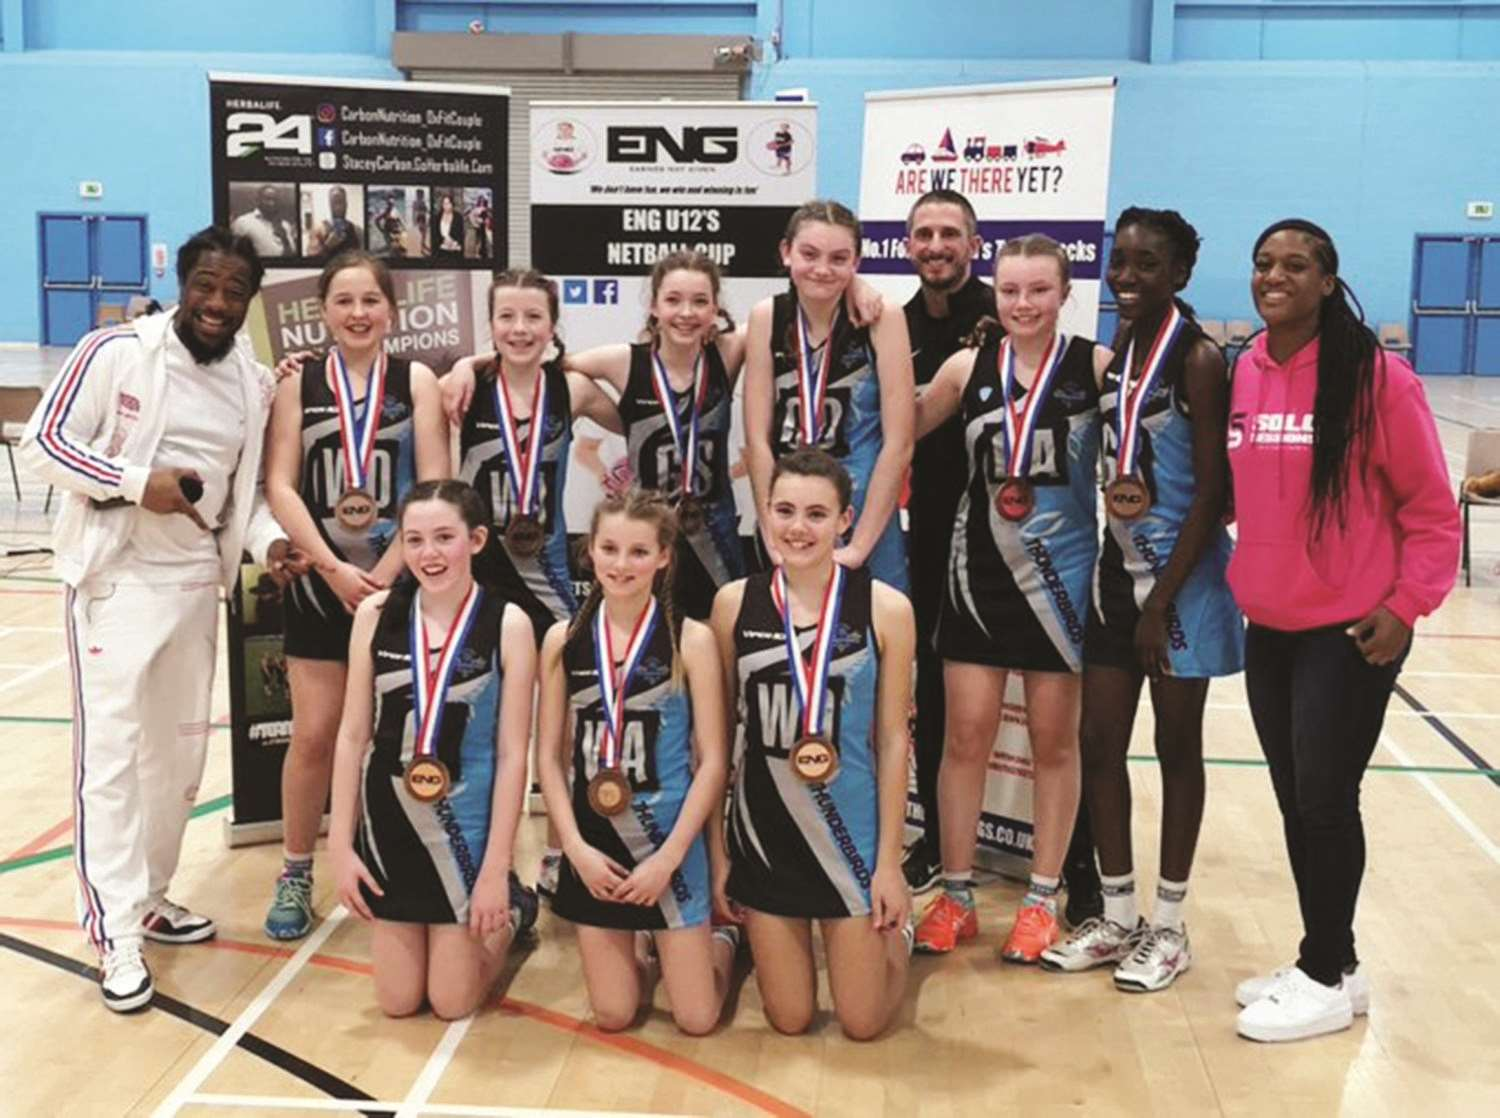 The U12A team (in no order) of Isabella Balzaretti, Mollie Hegarty, Charlotte Frank-Steier, Isobel Lock, Sienna Hollier, Abigail Brennan, Hannah Constance, Lara Whitting and Jessica Monthe with England international Sasha Corbin and representatives of ENG Sport UK.